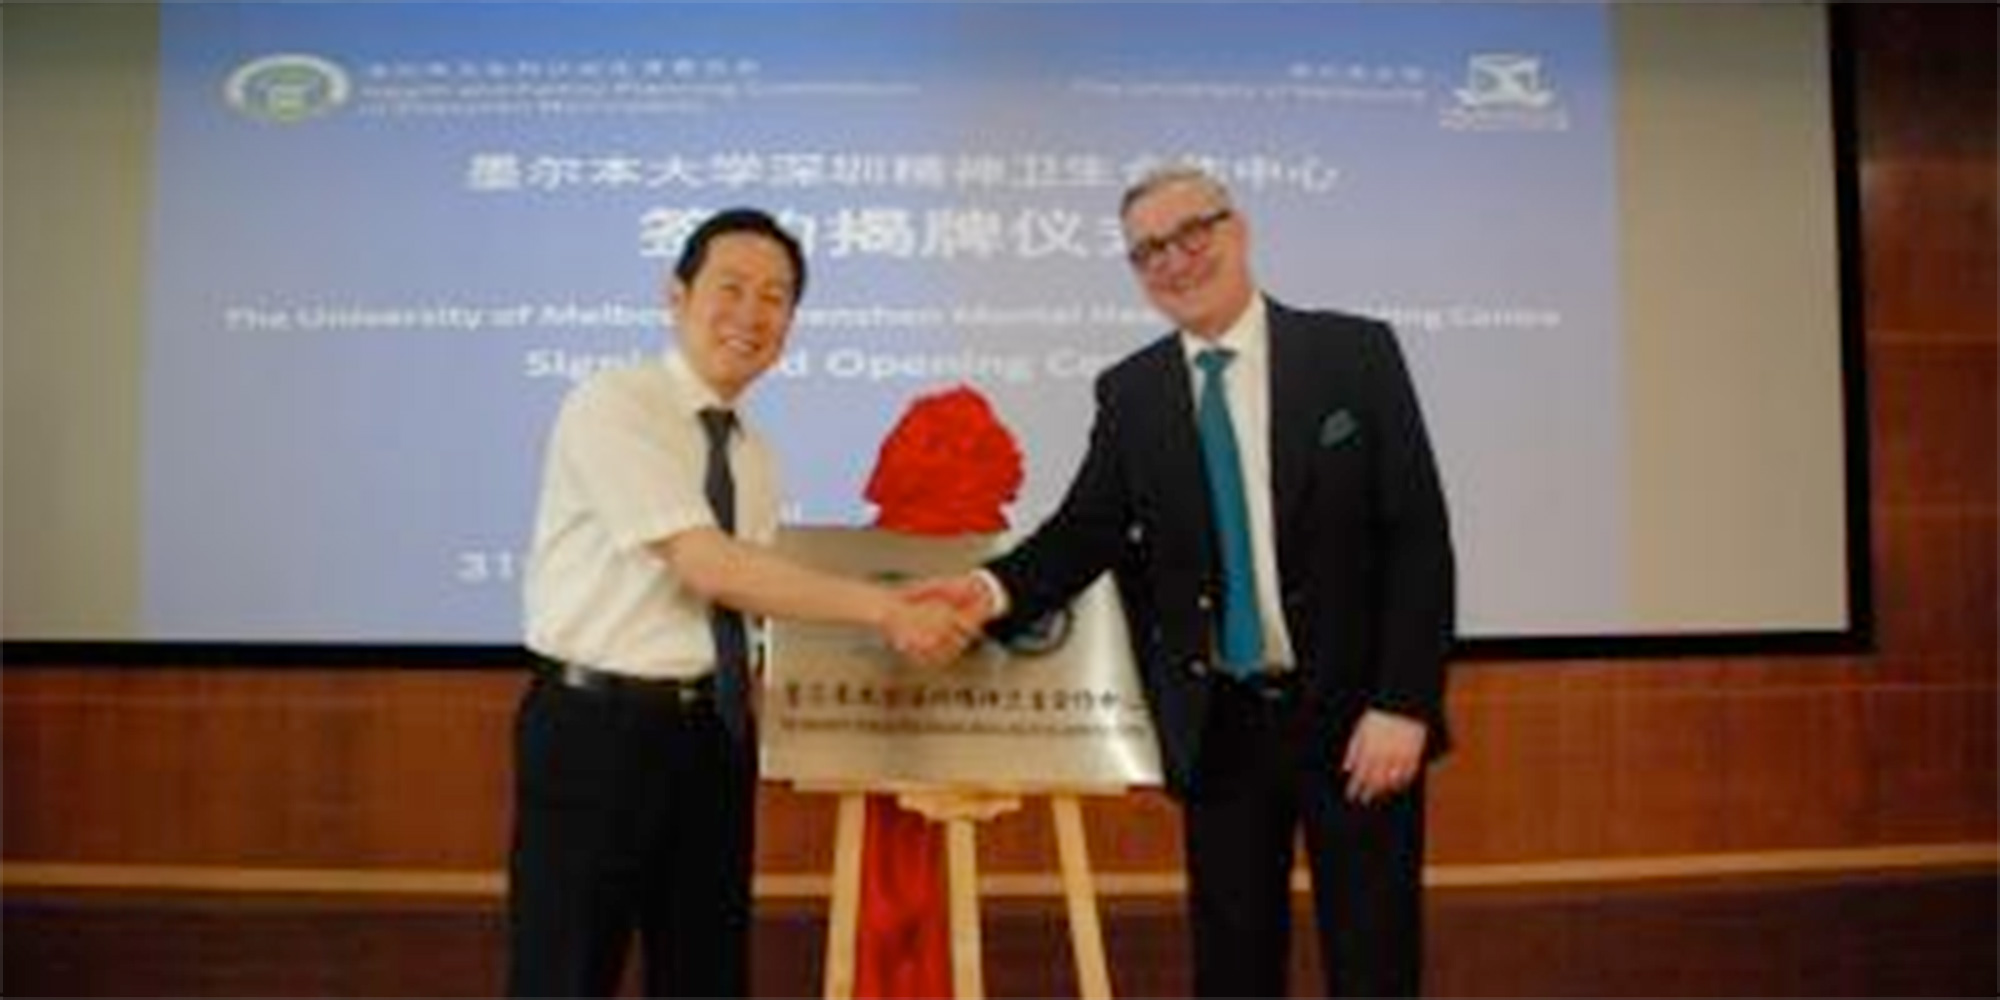 Collaboration underway with opening of New Melbourne University Shenzhen Mental Health Centre